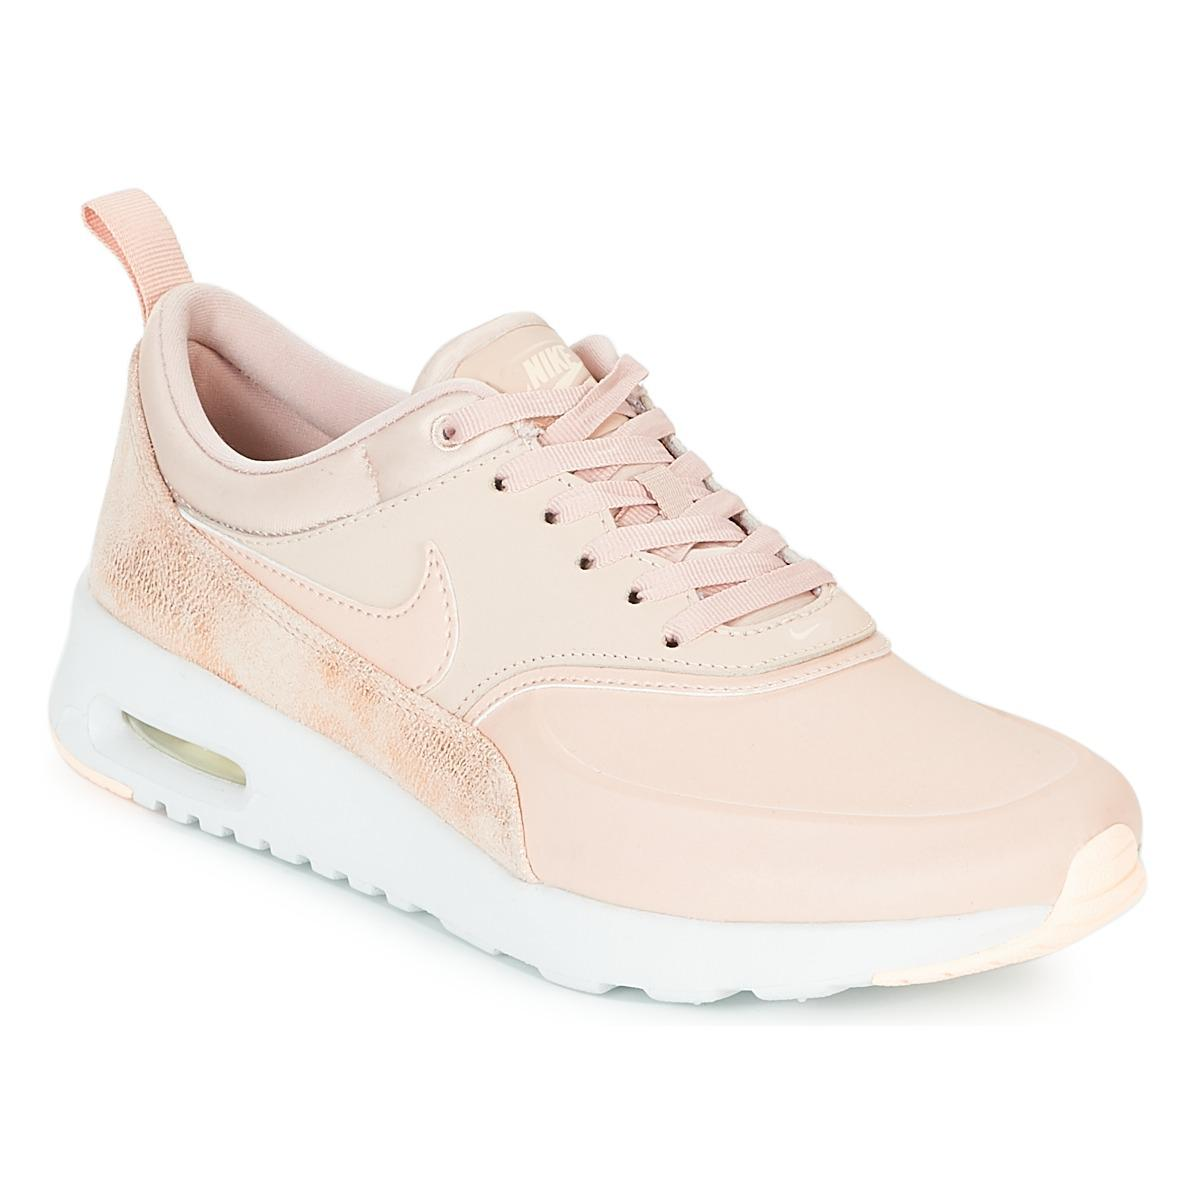 0e373f93f7f Nike Air Max Thea Premium W Women s Shoes (trainers) In Pink in Pink ...